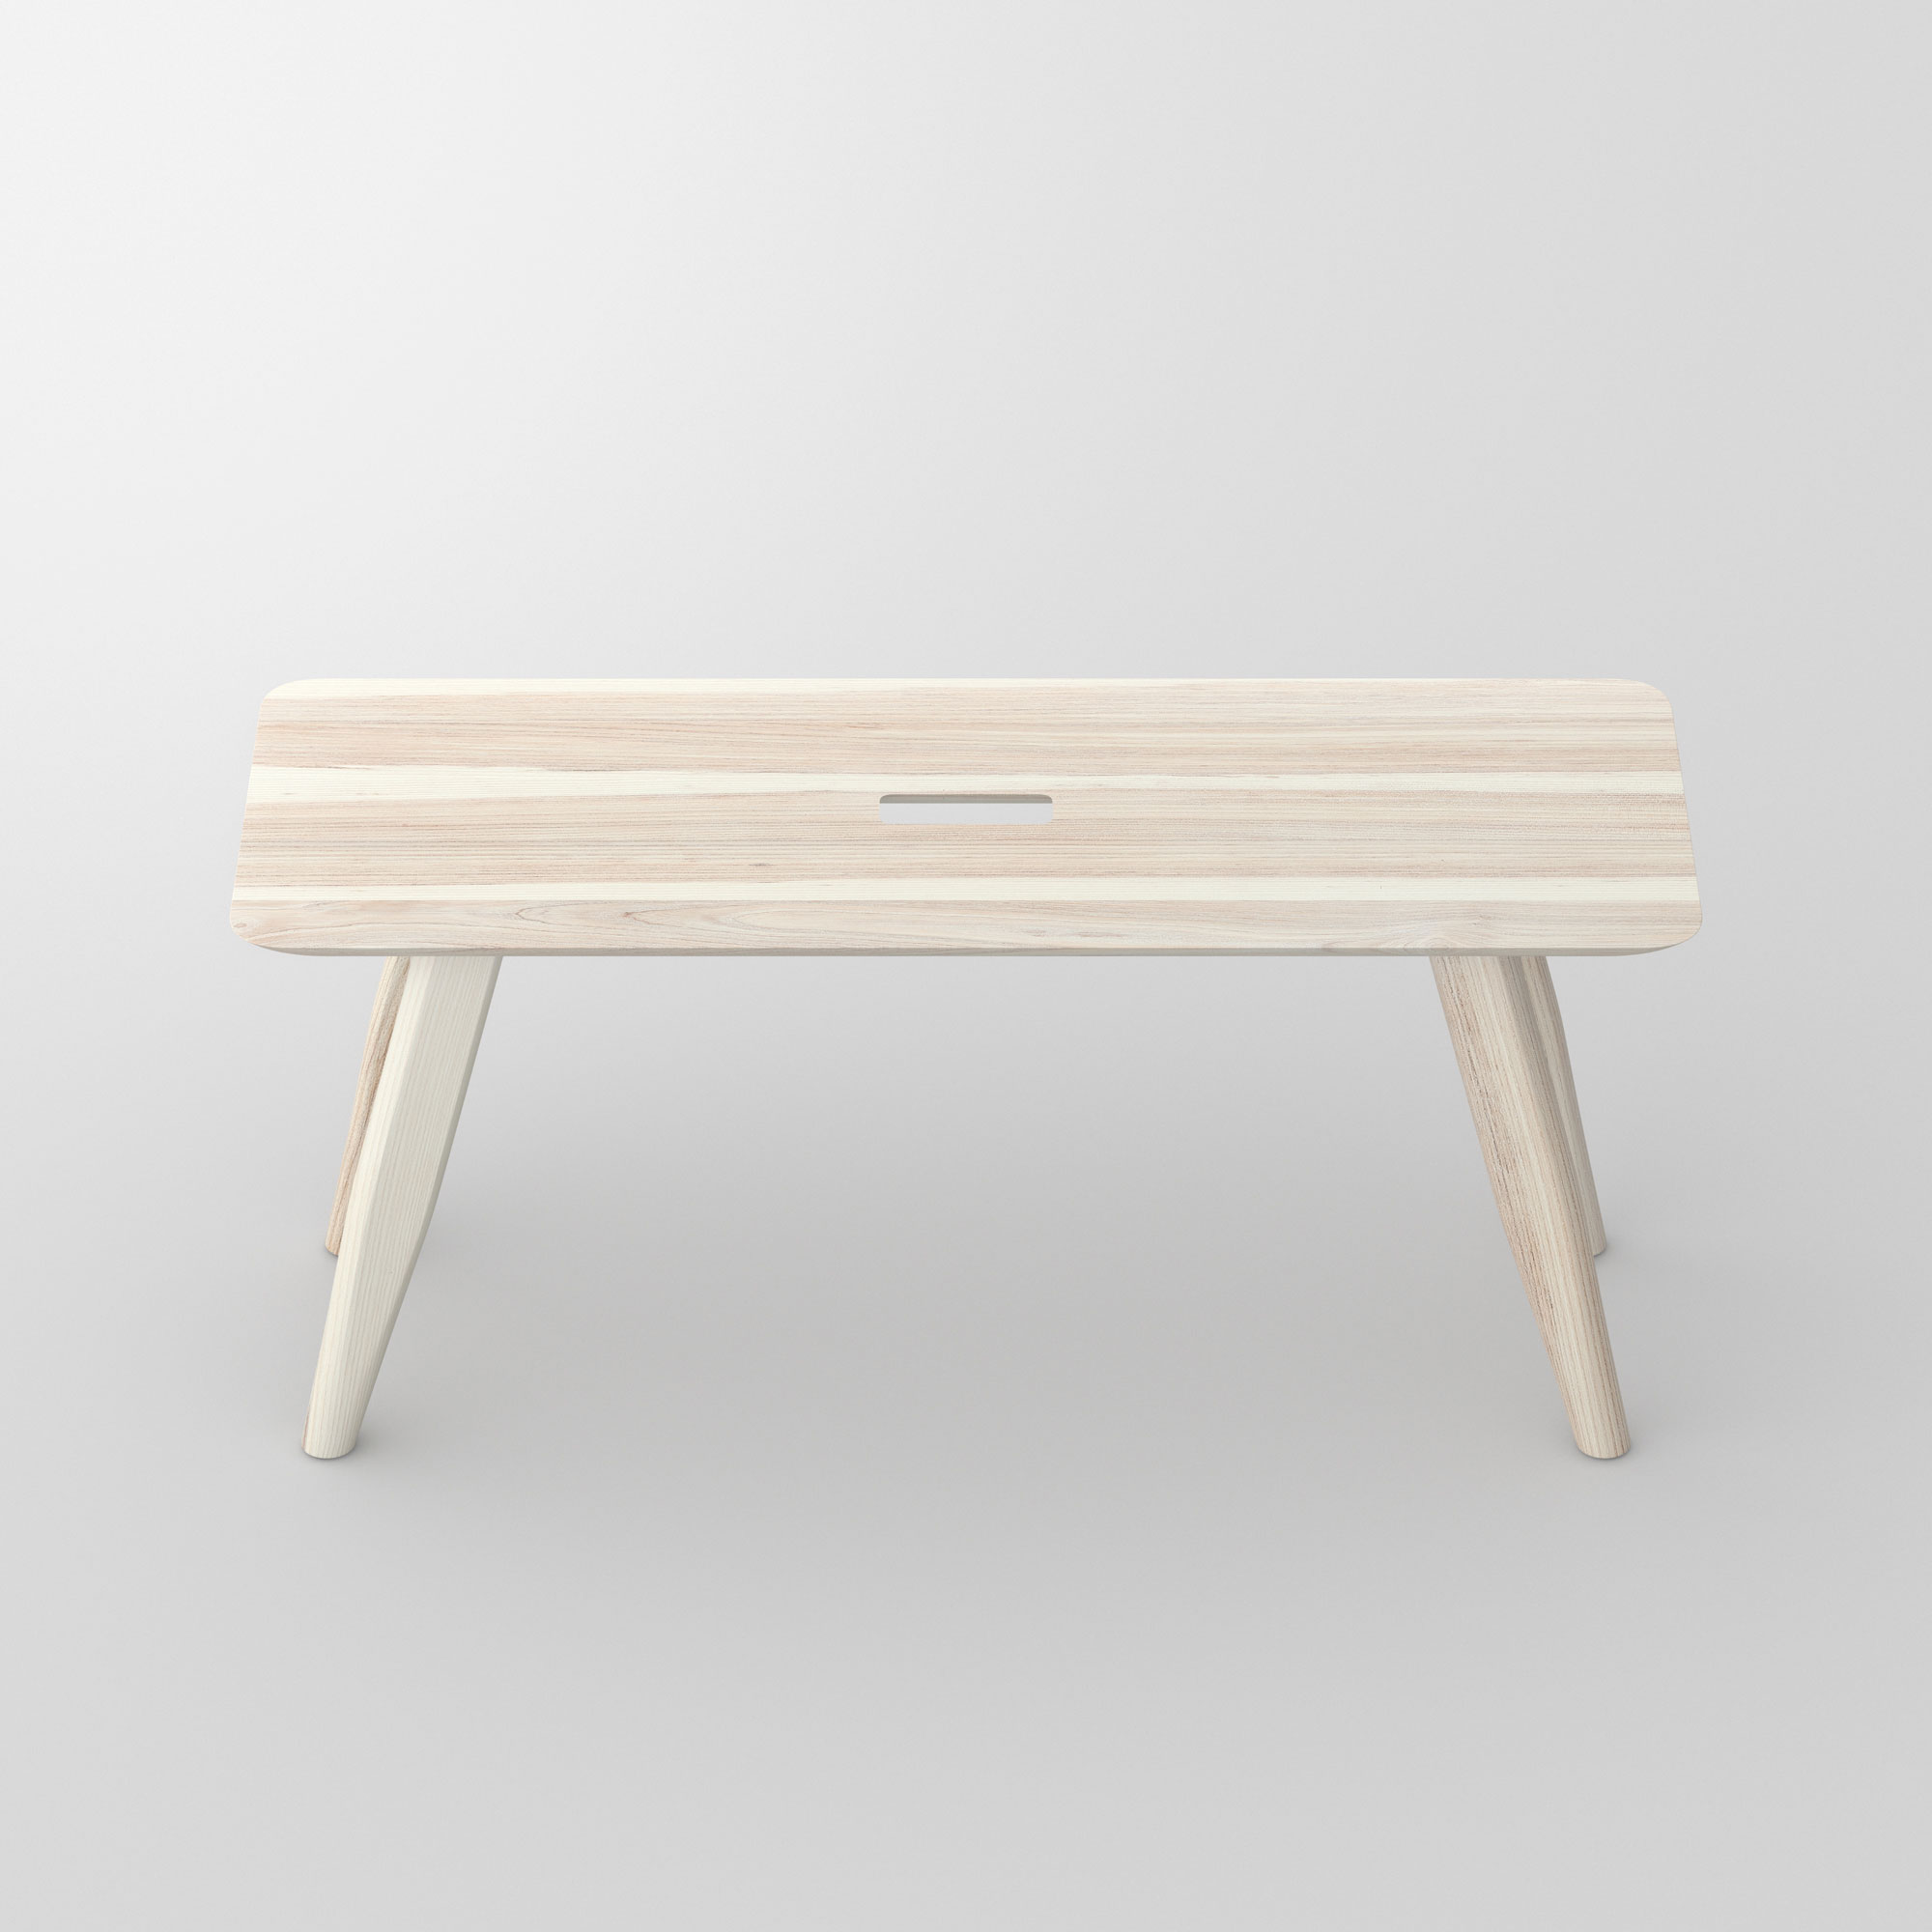 Designer Bench AETAS cam2 custom made in solid wood by vitamin design